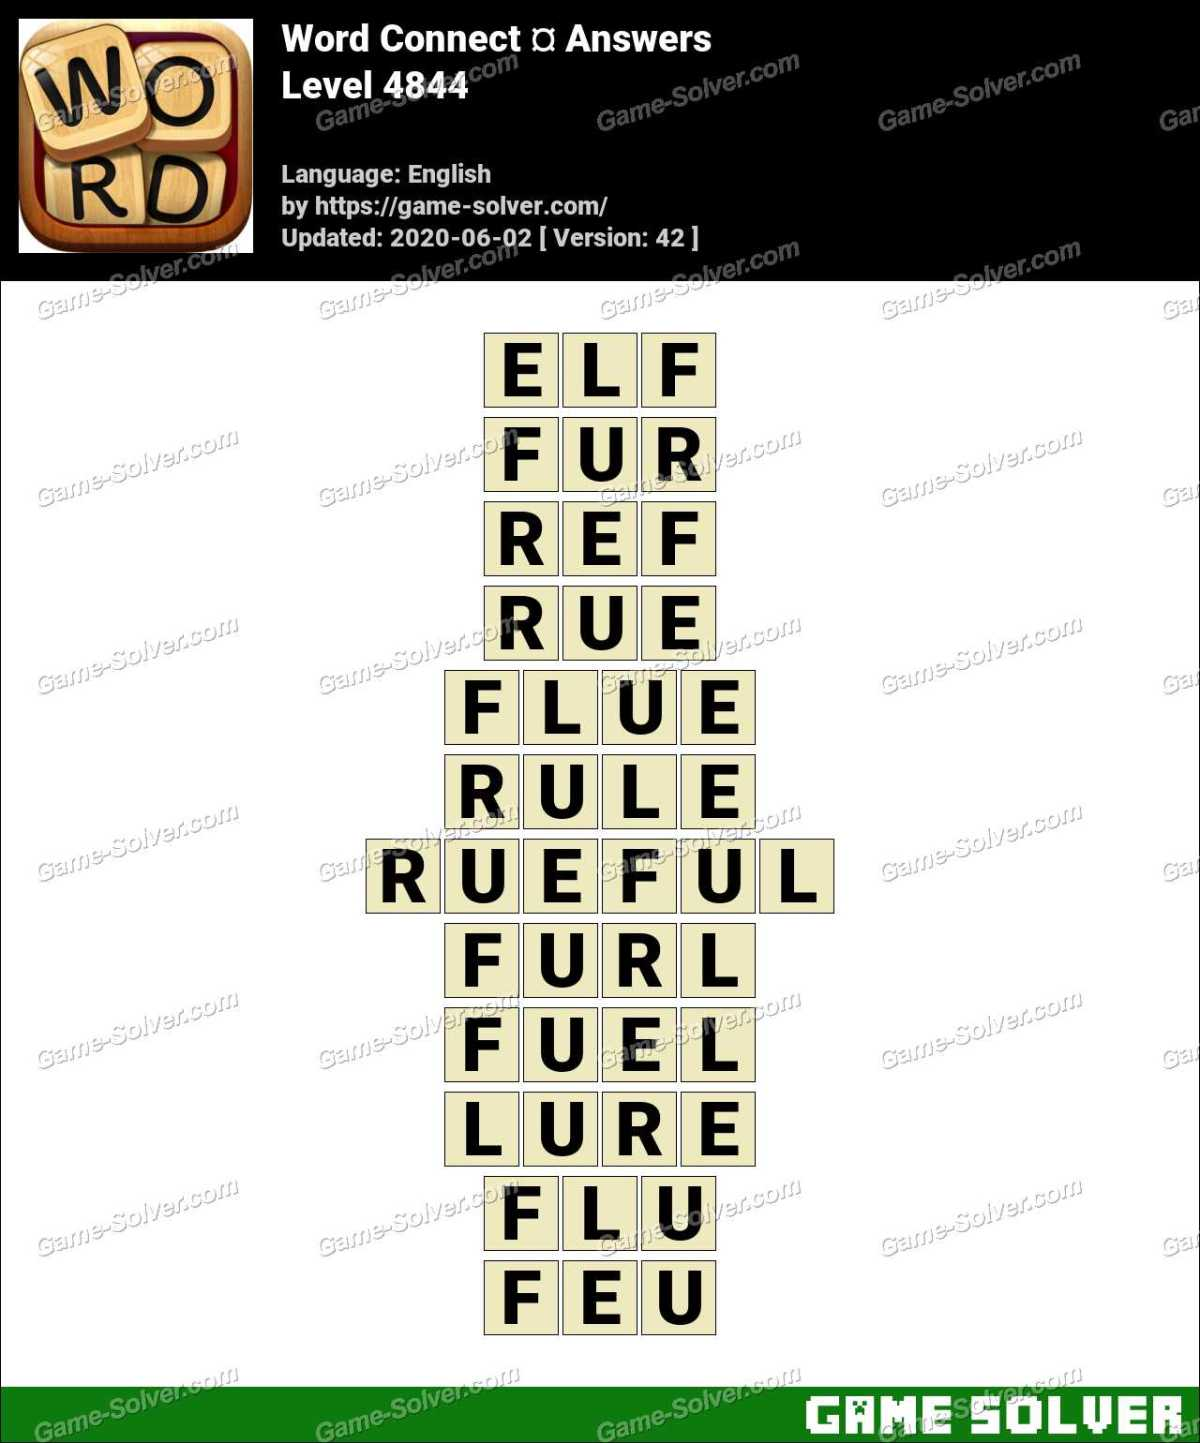 Word Connect Level 4844 Answers